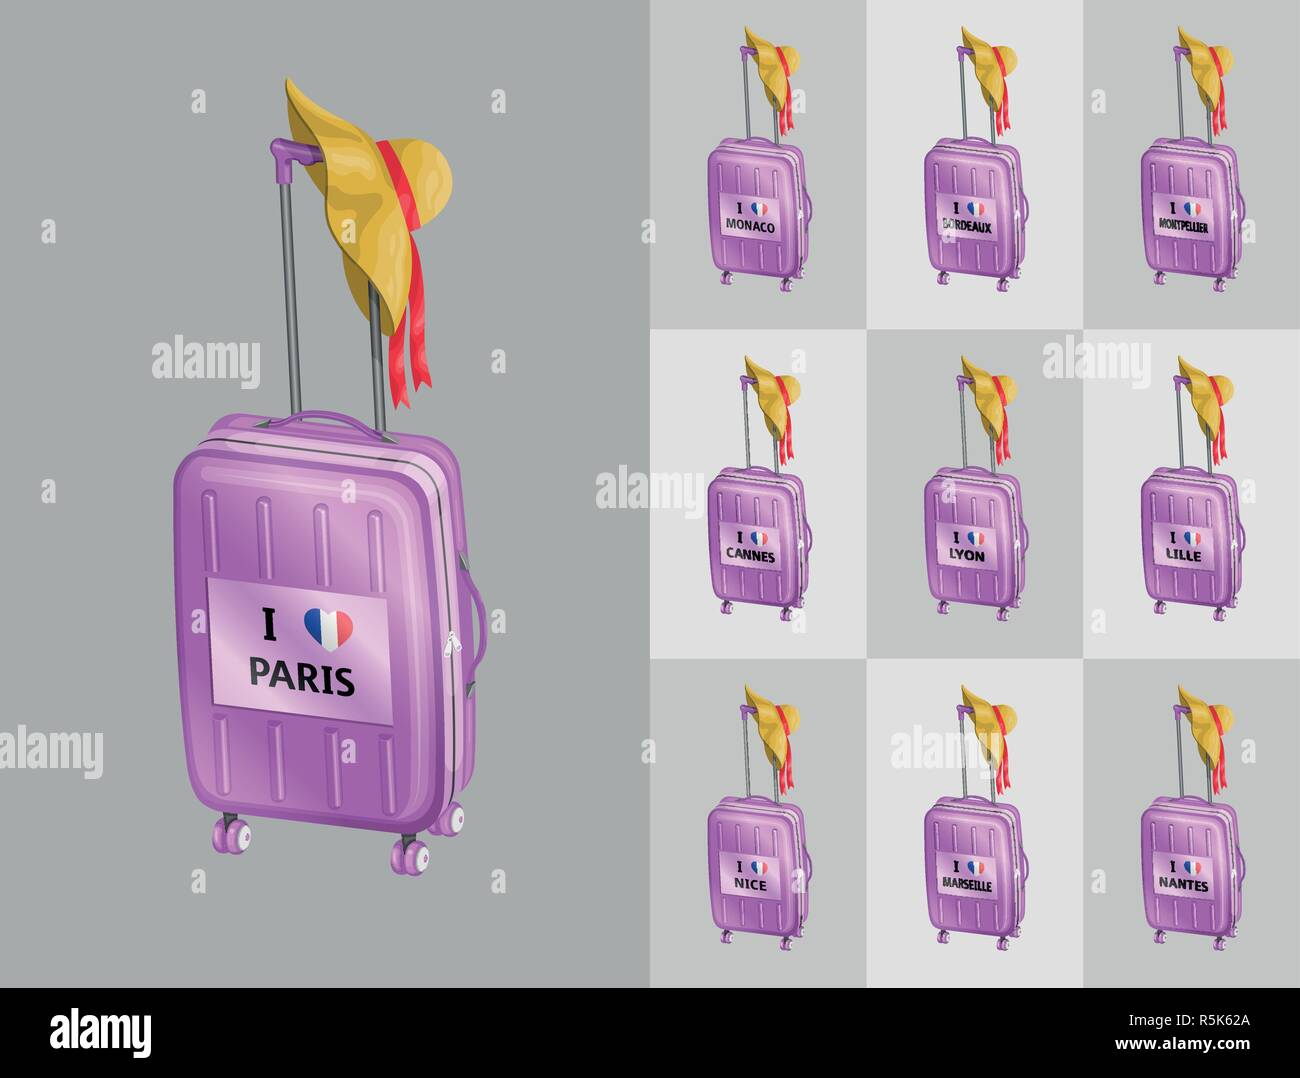 Tourist baggages with French beach hat for travel to France cities. All the objects are in different layers and the text types do not need any font. Stock Vector